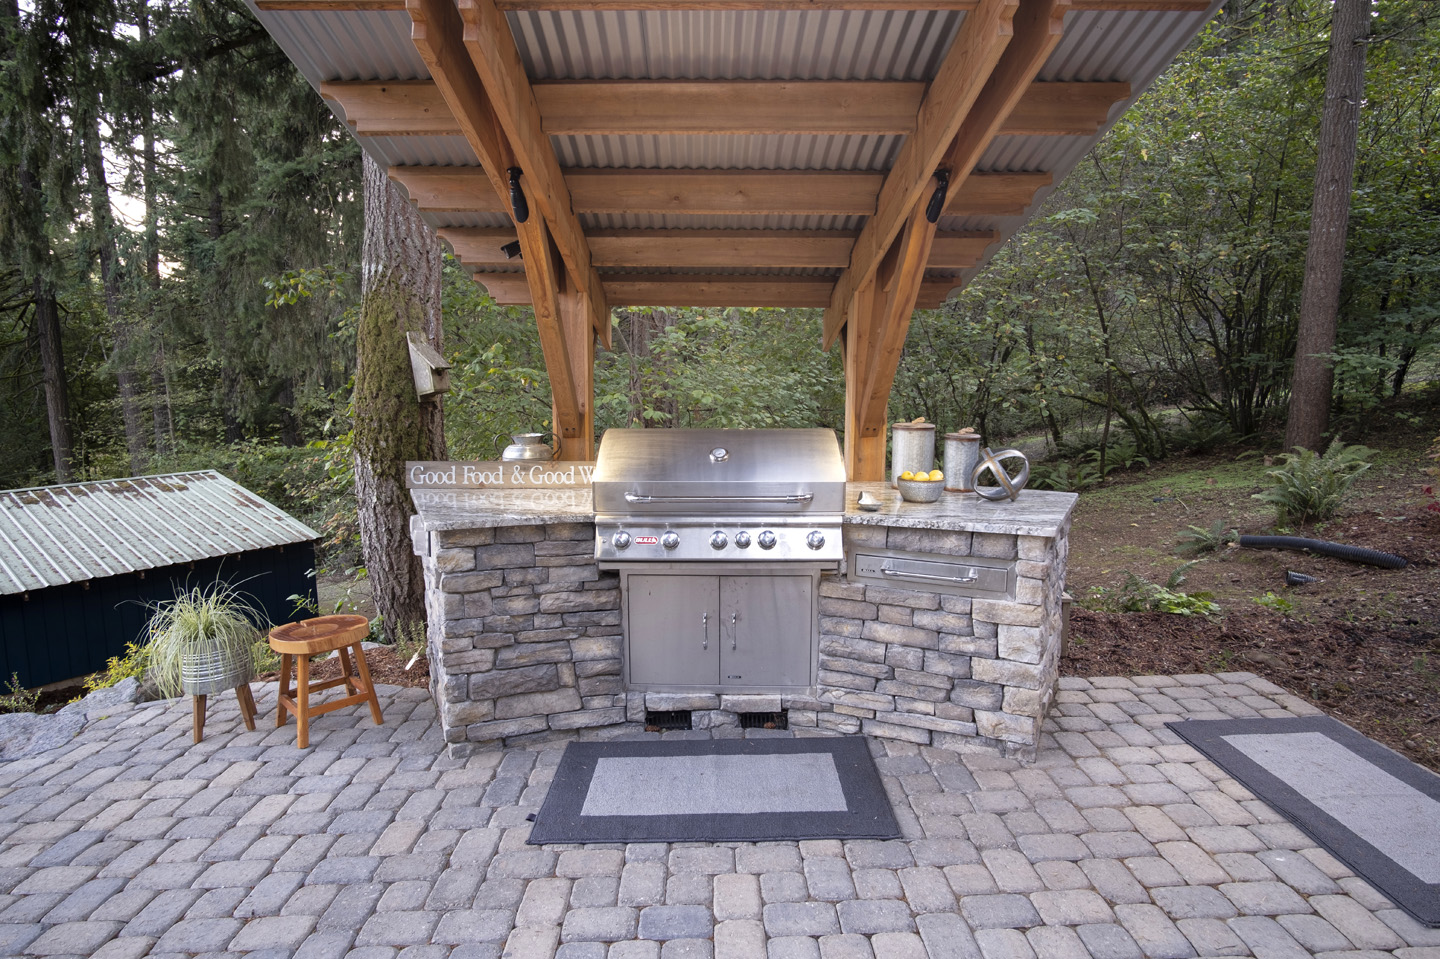 Covered Grill Island